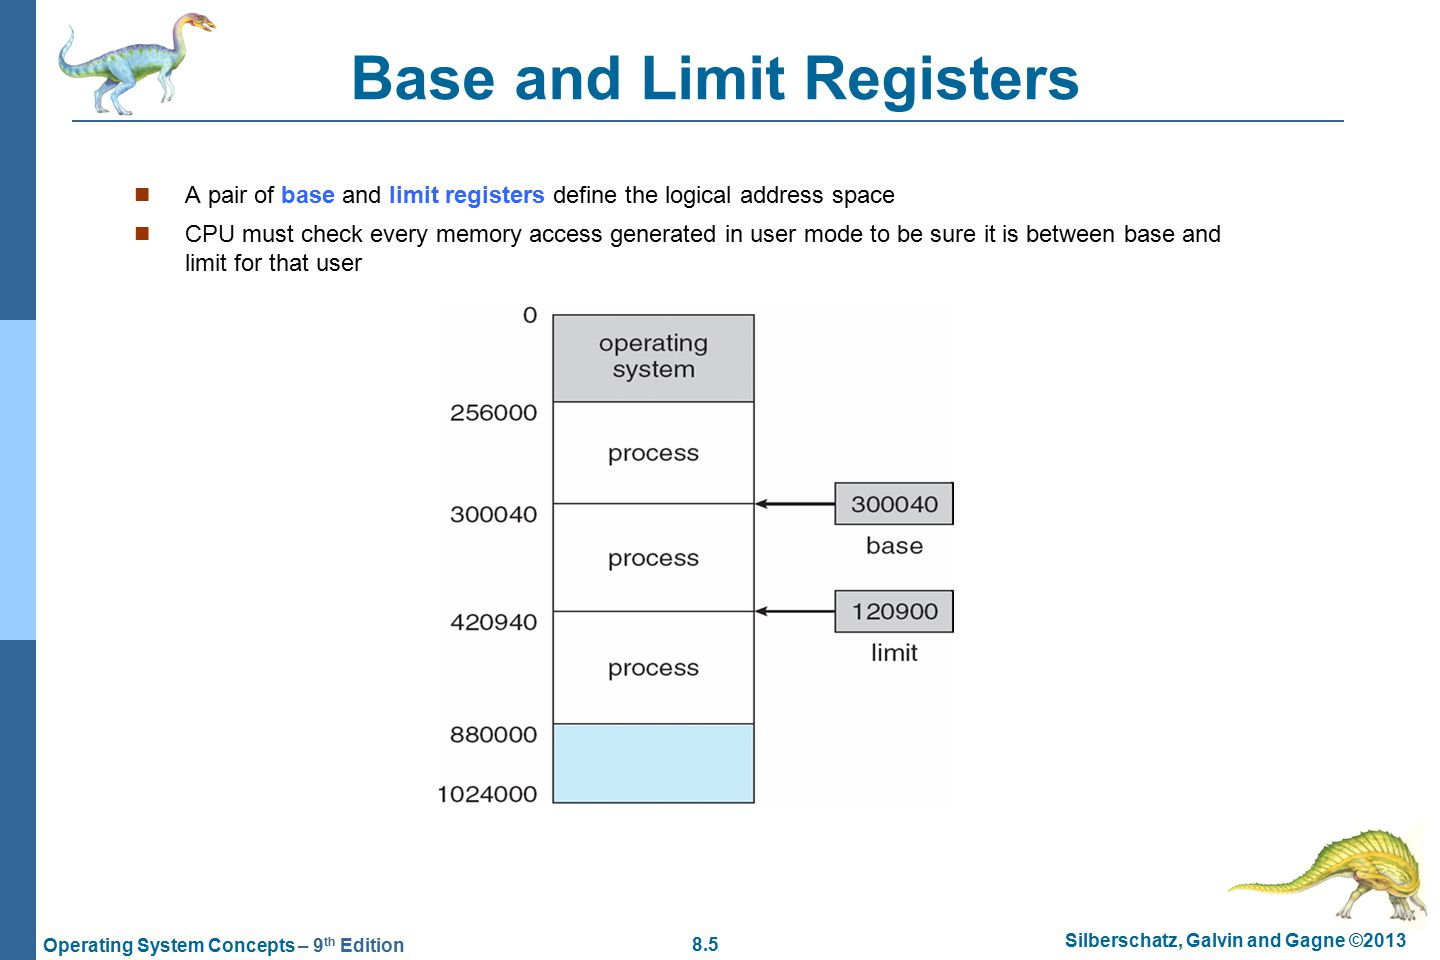 8.5 Silberschatz, Galvin and Gagne ©2013 Operating System Concepts – 9 th Edition Base and Limit Registers A pair of base and limit registers define the logical address space CPU must check every memory access generated in user mode to be sure it is between base and limit for that user